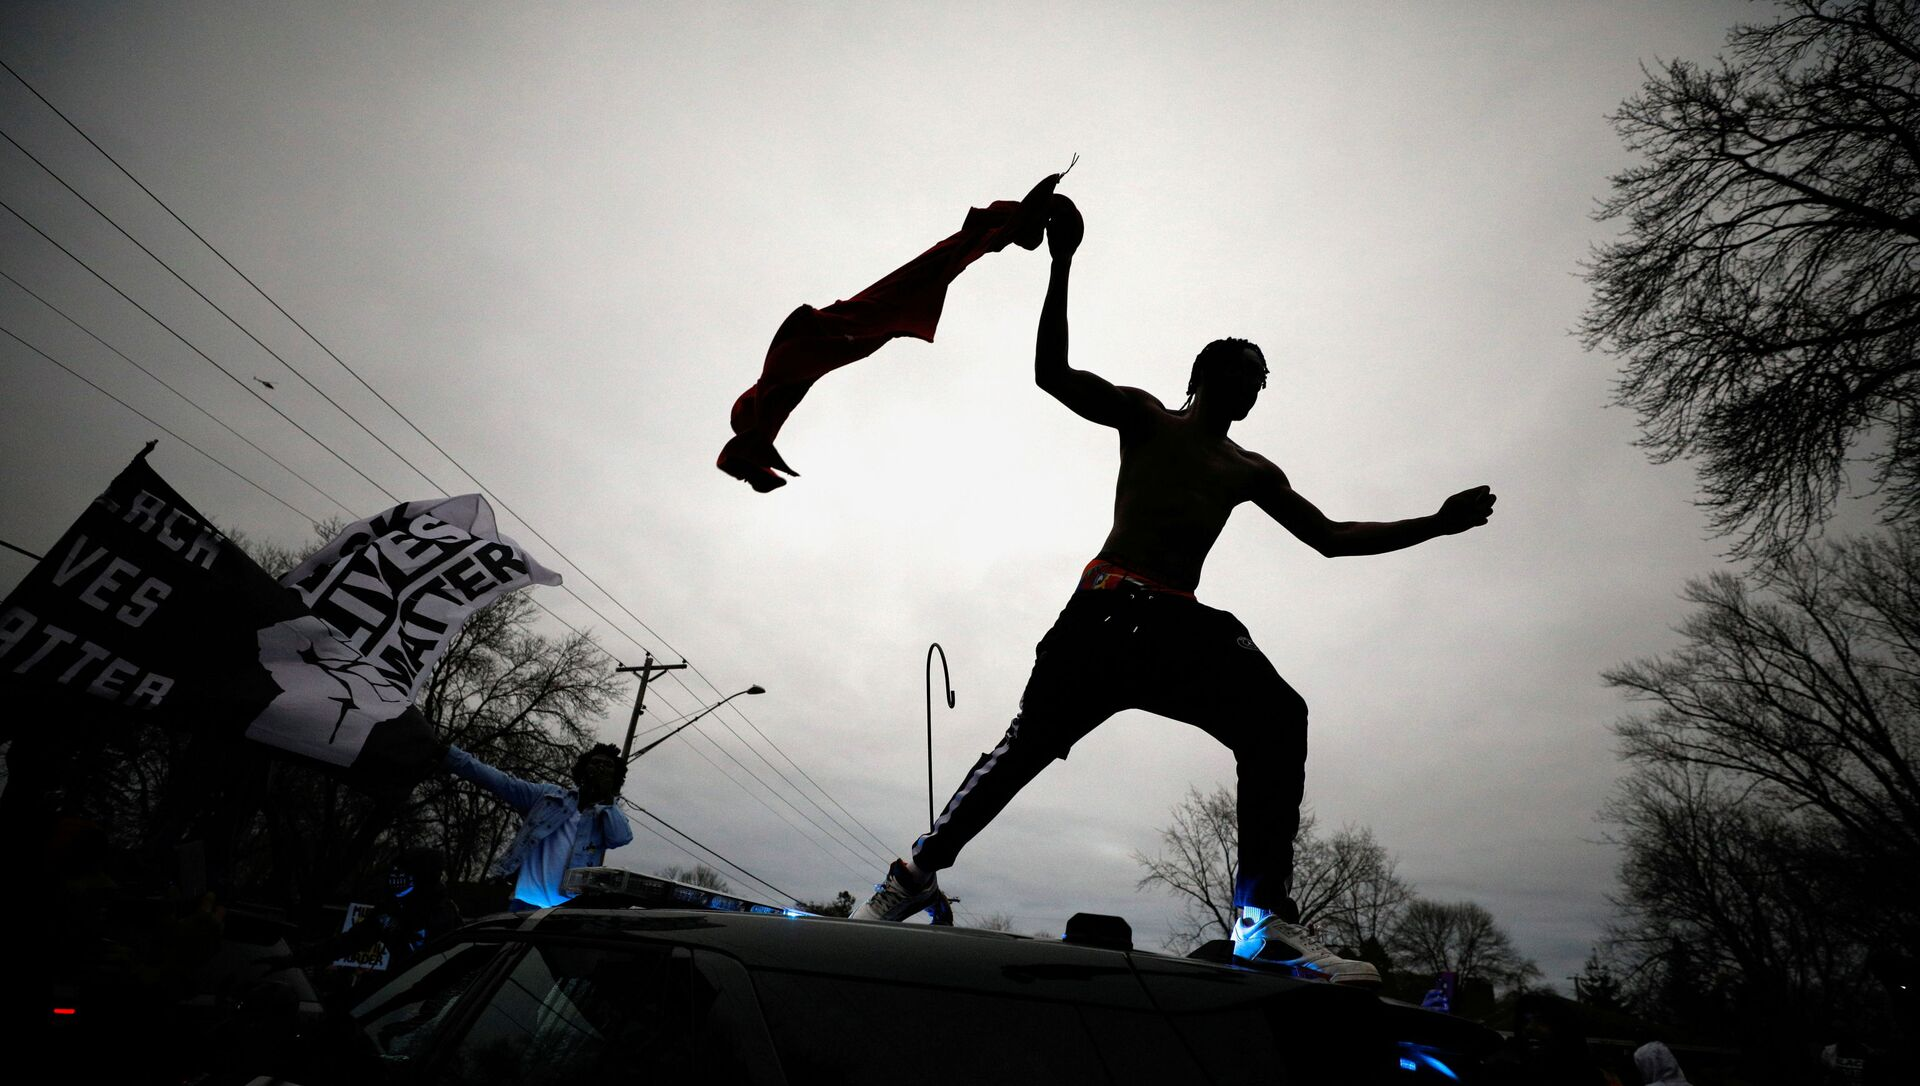 A demonstrator jumps off a police cruiser during a protest after police allegedly shot and killed a man, who local media report is identified by the victim's mother as Daunte Wright, in Brooklyn Center, Minnesota, U.S., April 11, 2021. - Sputnik Italia, 1920, 12.04.2021